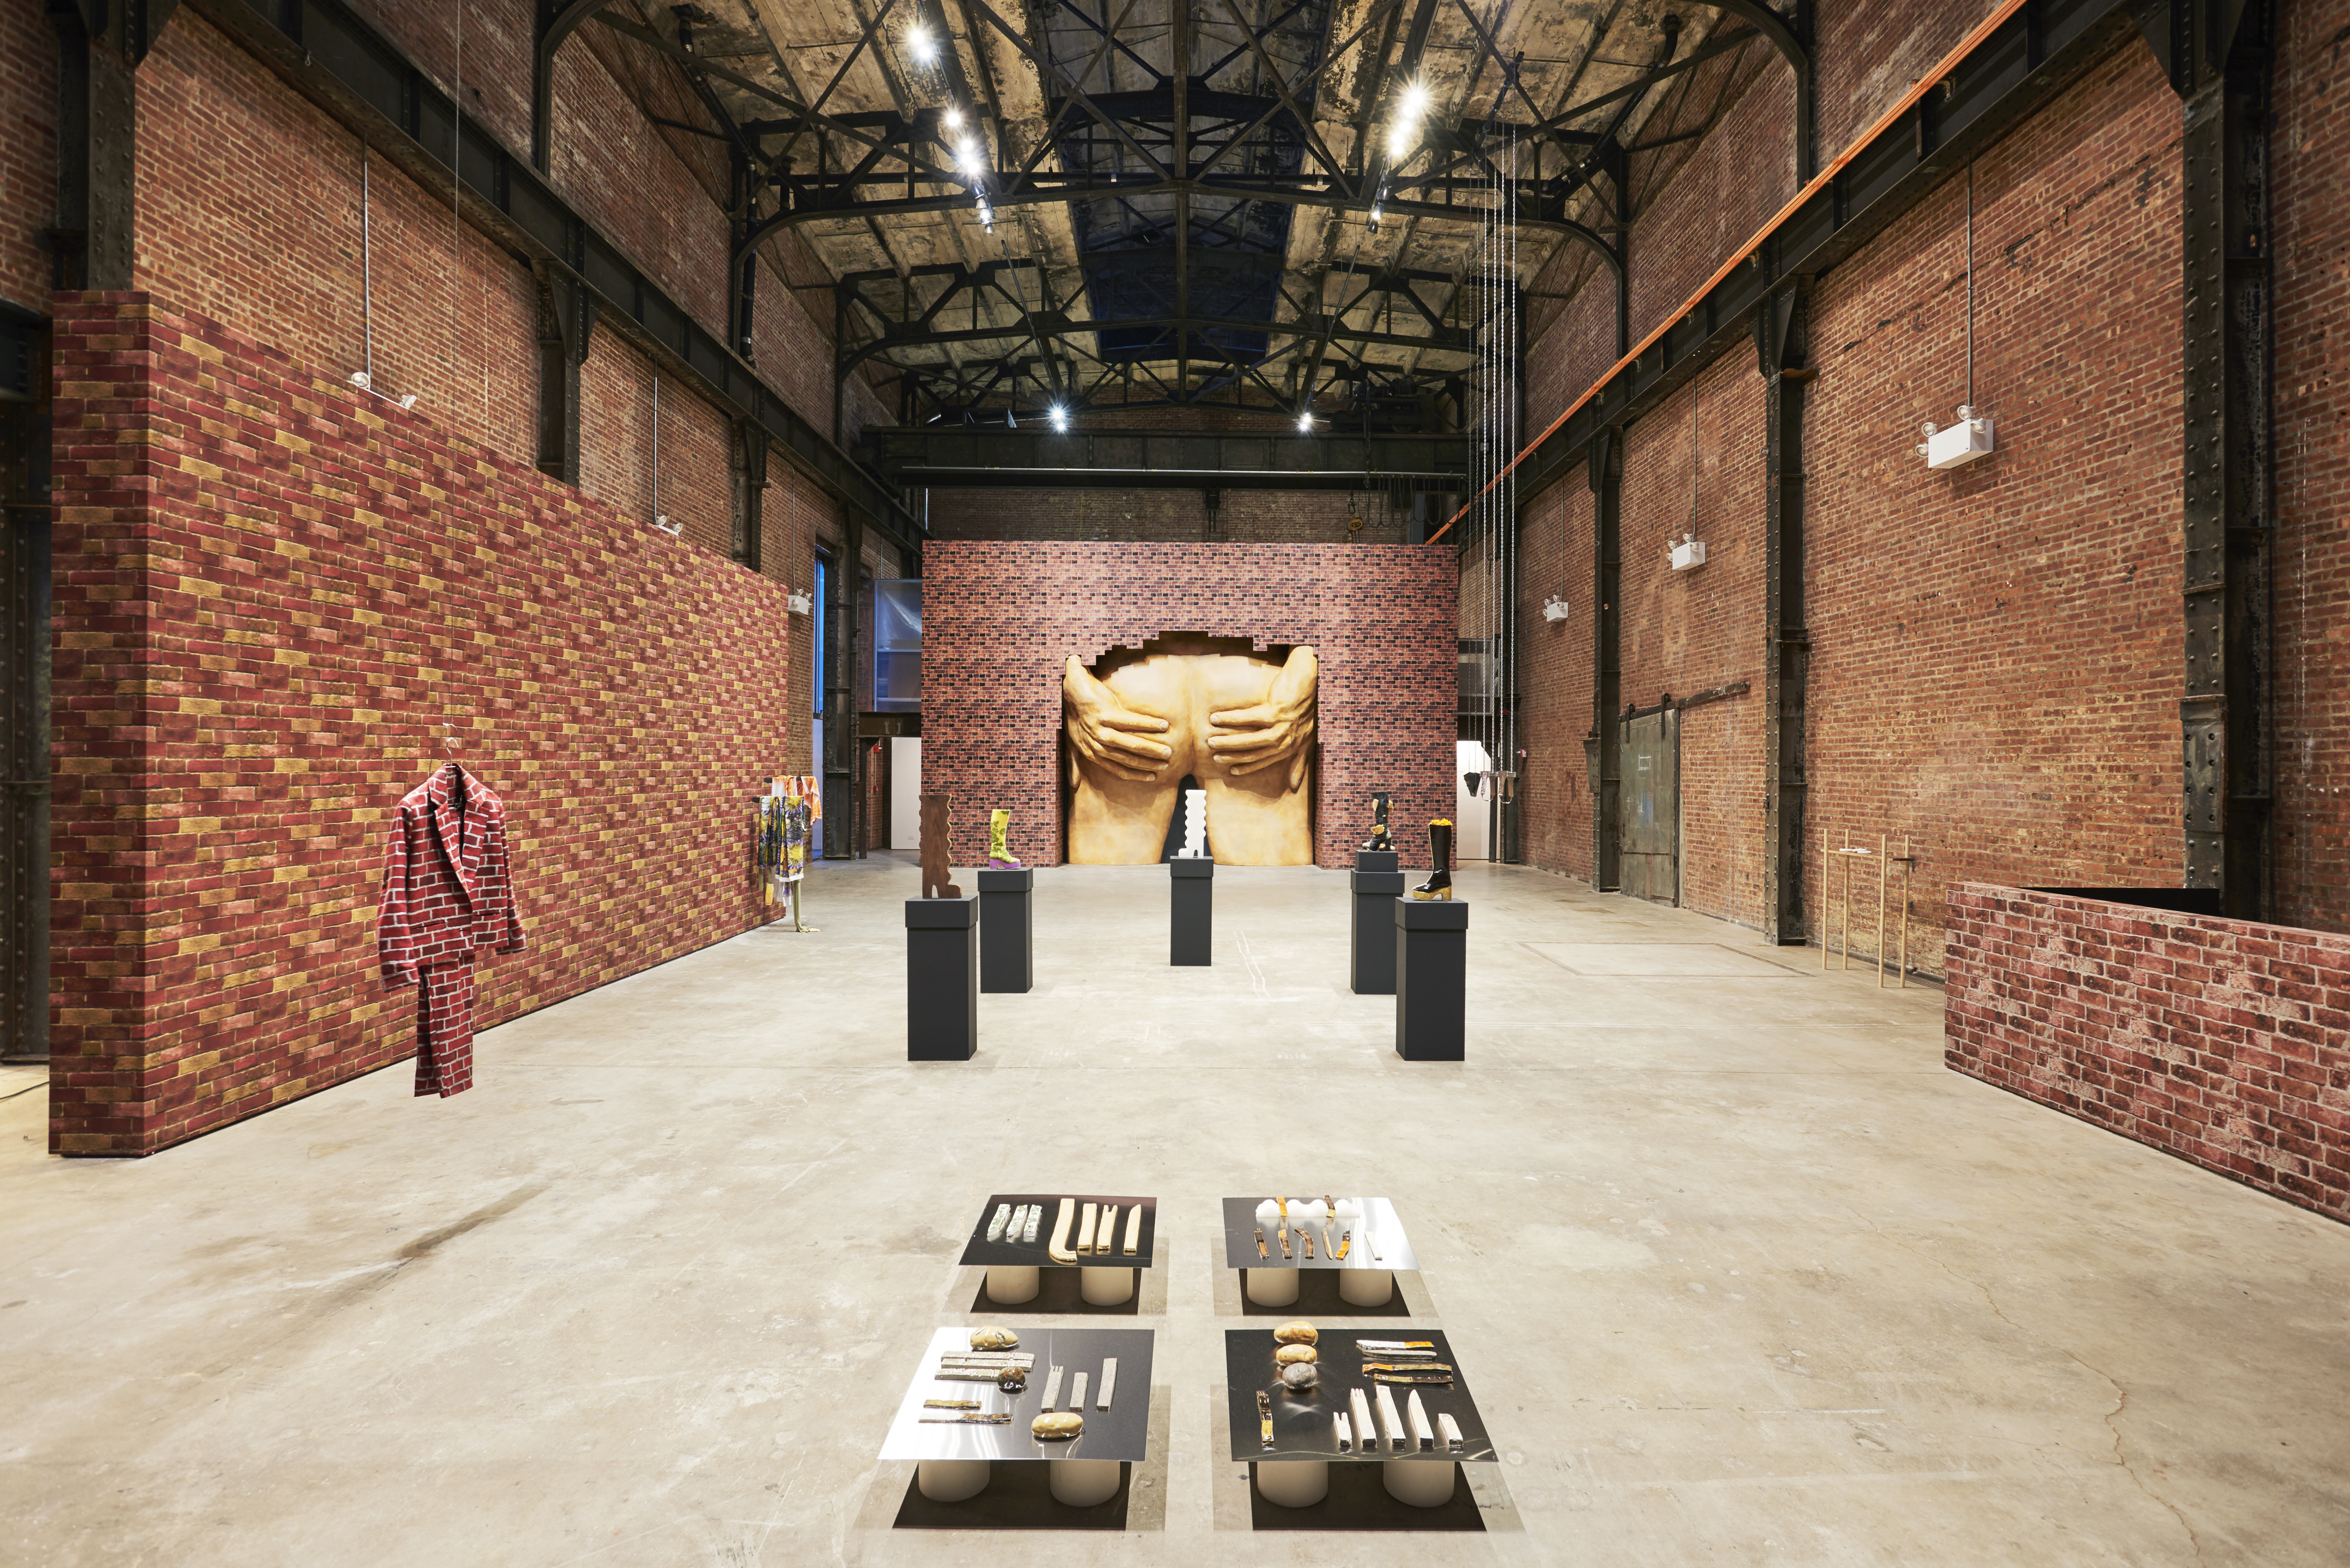 Installation view of Martine Syms: Vertical Elevated Oblique at Bridget Donahue, New York, New York, September 17, 2015 - November 01, 2015. Courtesy of Bridget Donahue.